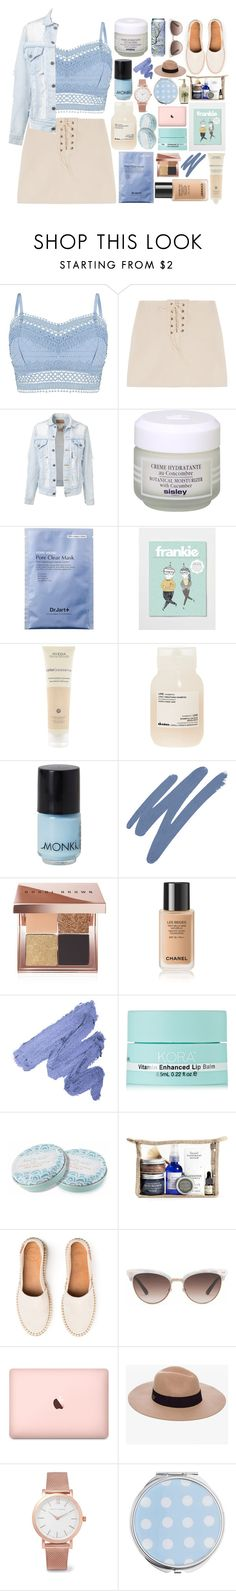 """""""☼; ONCE I WAS SEVEN YEARS OLD"""" by ashleigh989l ❤ liked on Polyvore featuring Lipsy, Sisley Paris, Aveda, Davines, Monki, NARS Cosmetics, Bobbi Brown Cosmetics, KORA Organics by Miranda Kerr, Hand in Hand Soap and Gucci"""